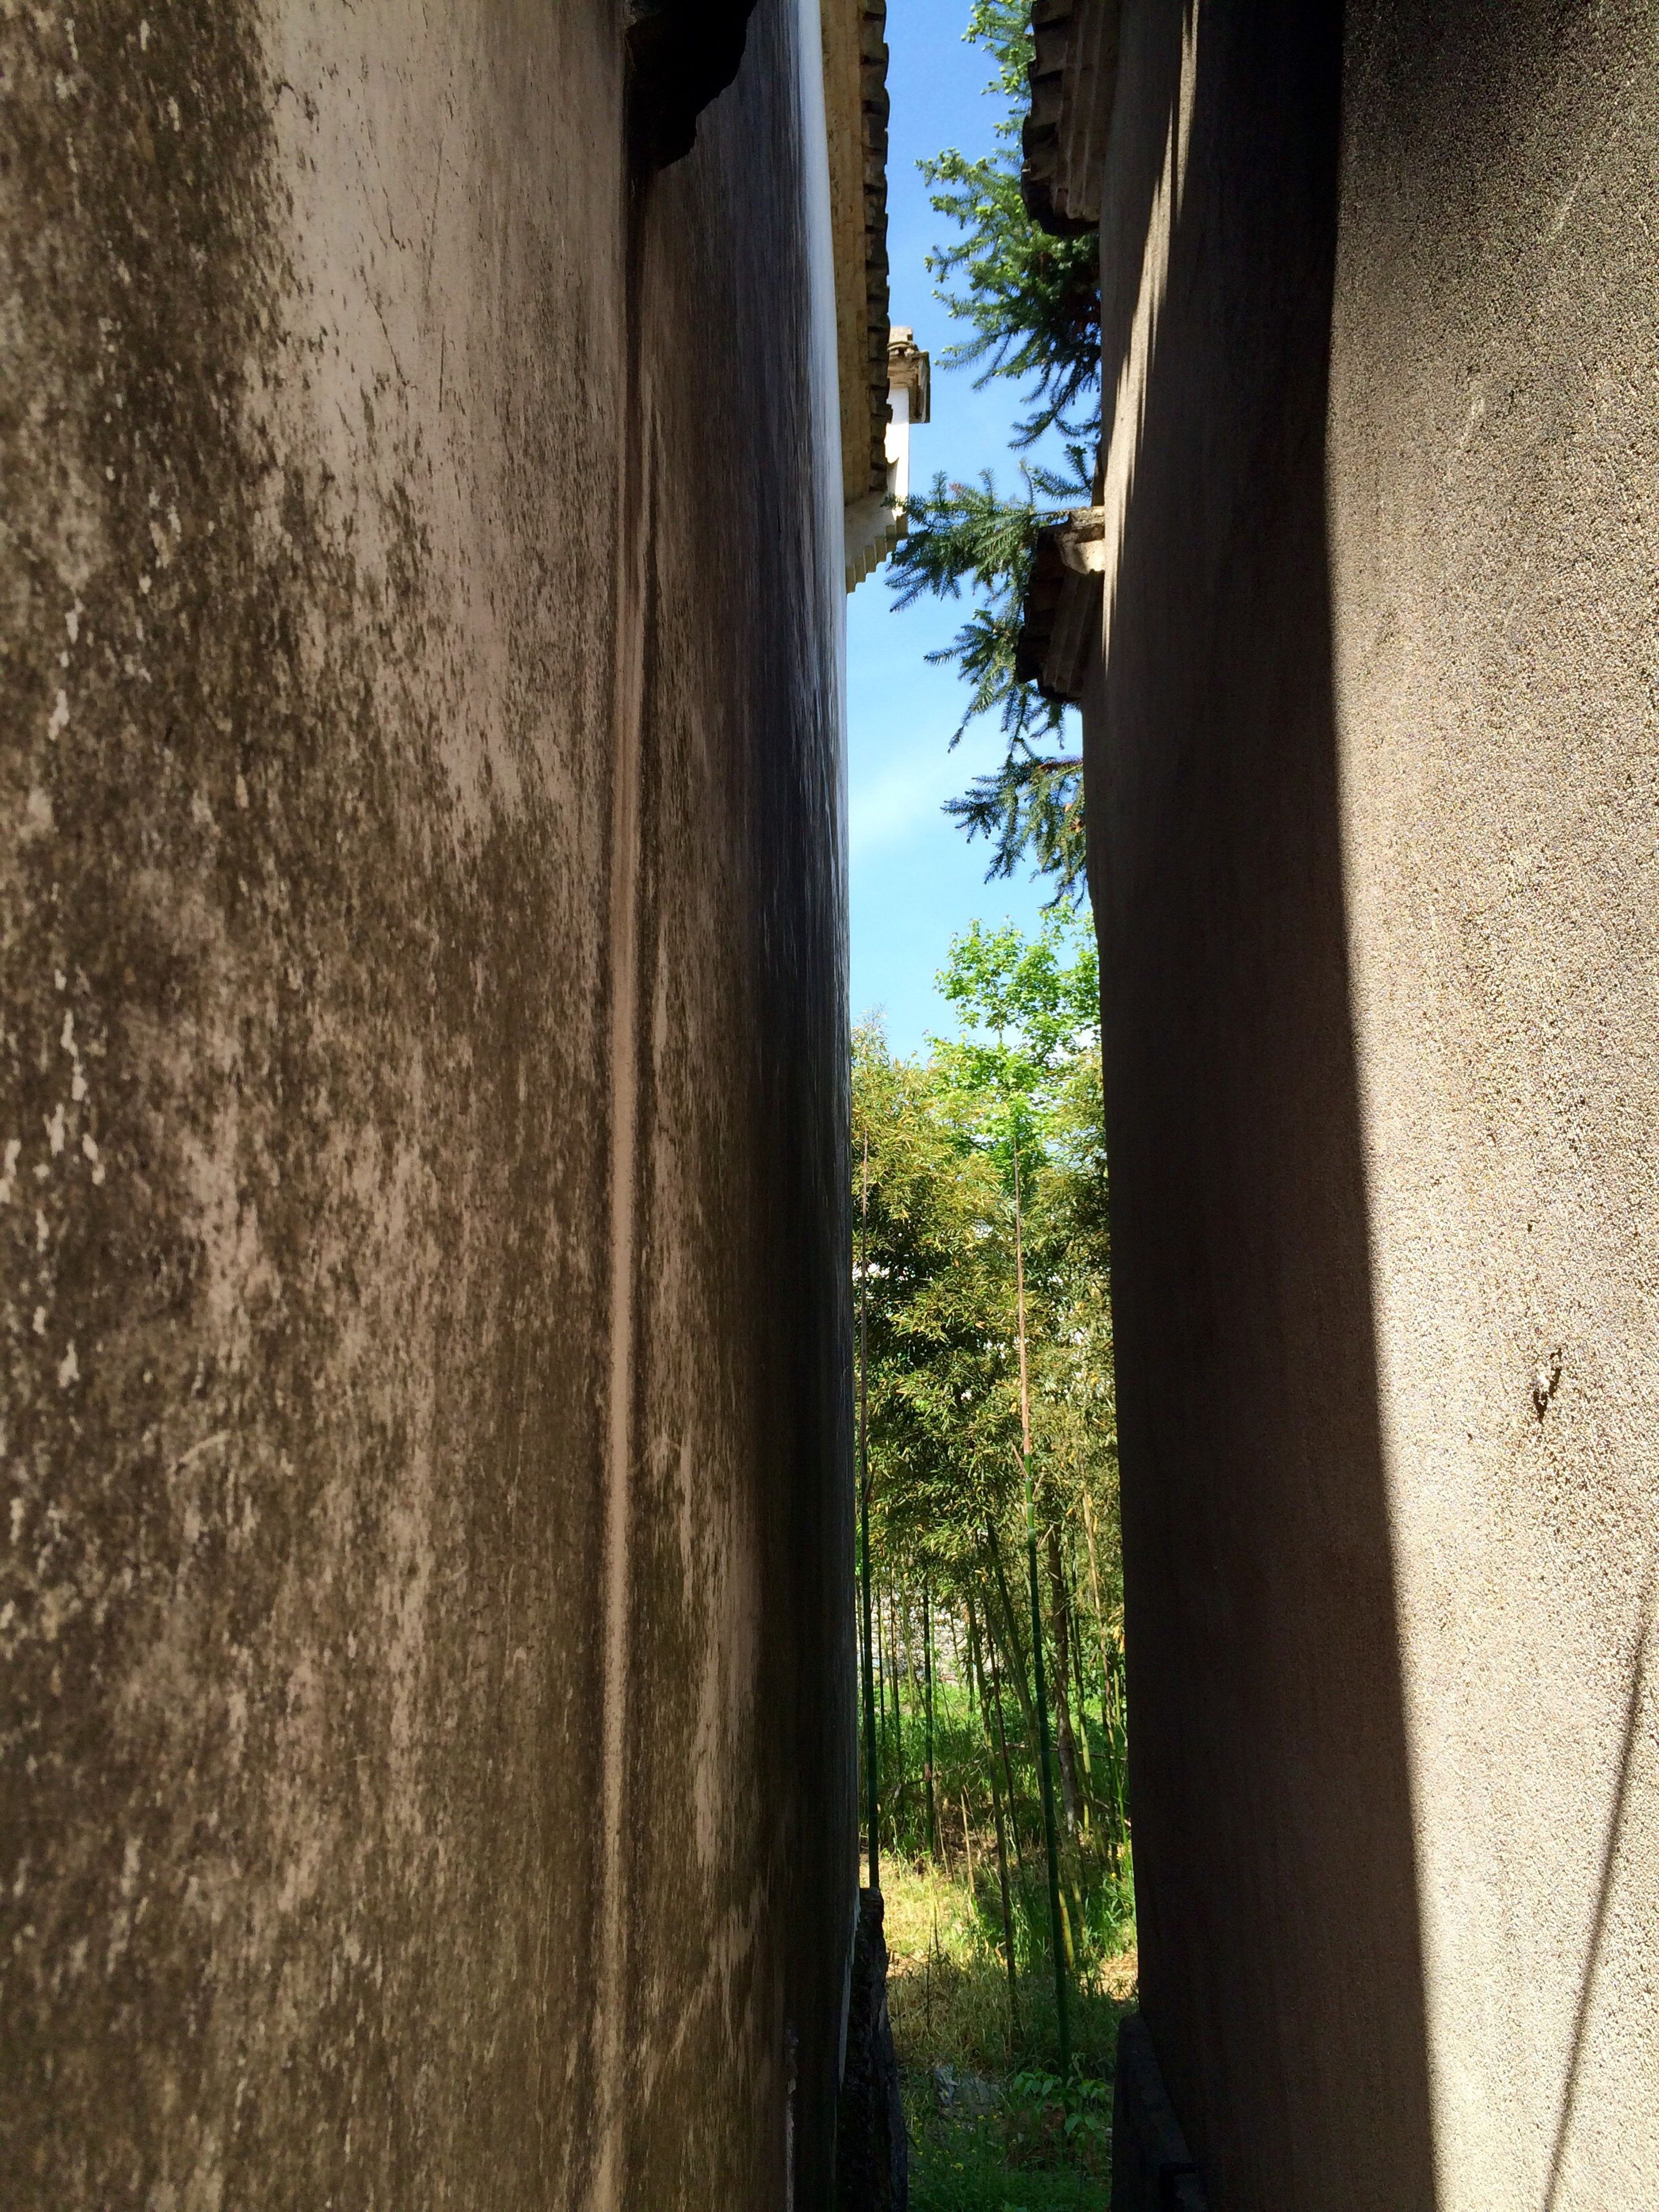 tree, built structure, architecture, building exterior, wall - building feature, window, tree trunk, growth, wall, sunlight, day, shadow, house, no people, textured, outdoors, green color, building, nature, sky